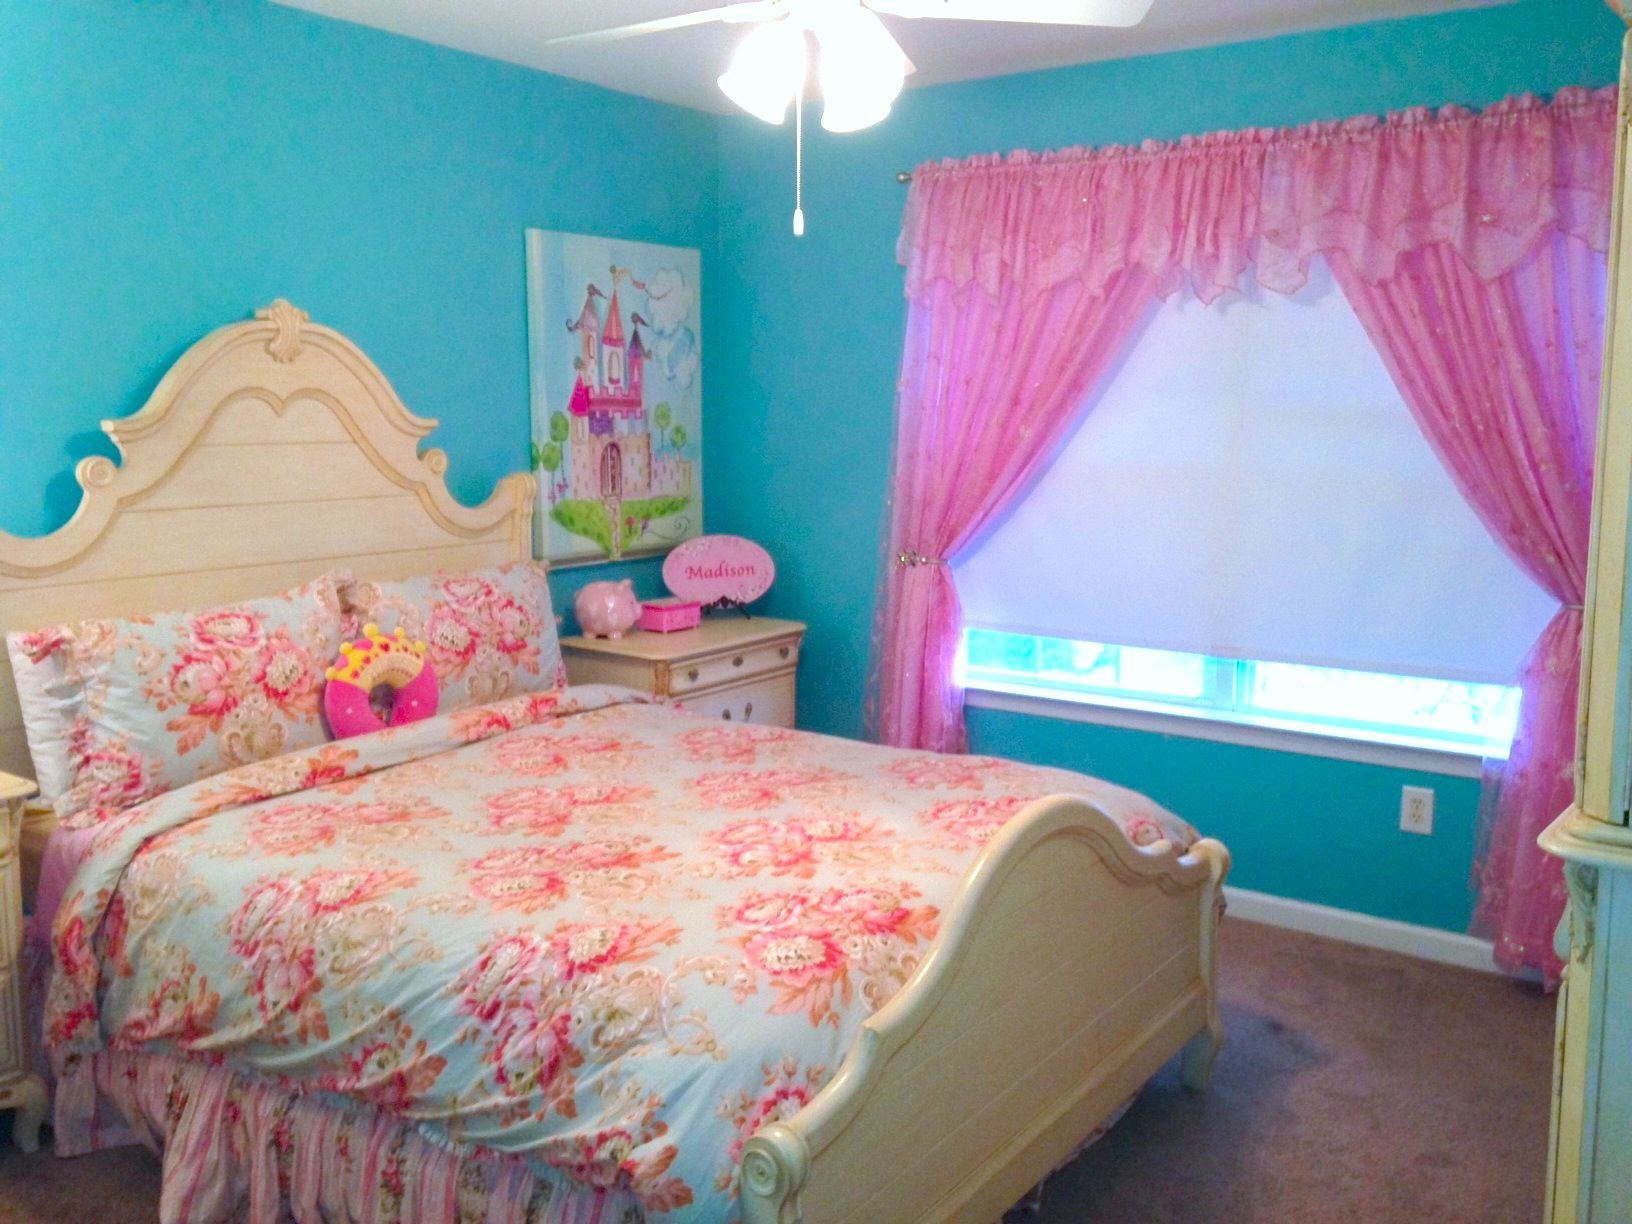 Astounding Adorable Princess Themed Little Girls Room Compliments Of Download Free Architecture Designs Rallybritishbridgeorg